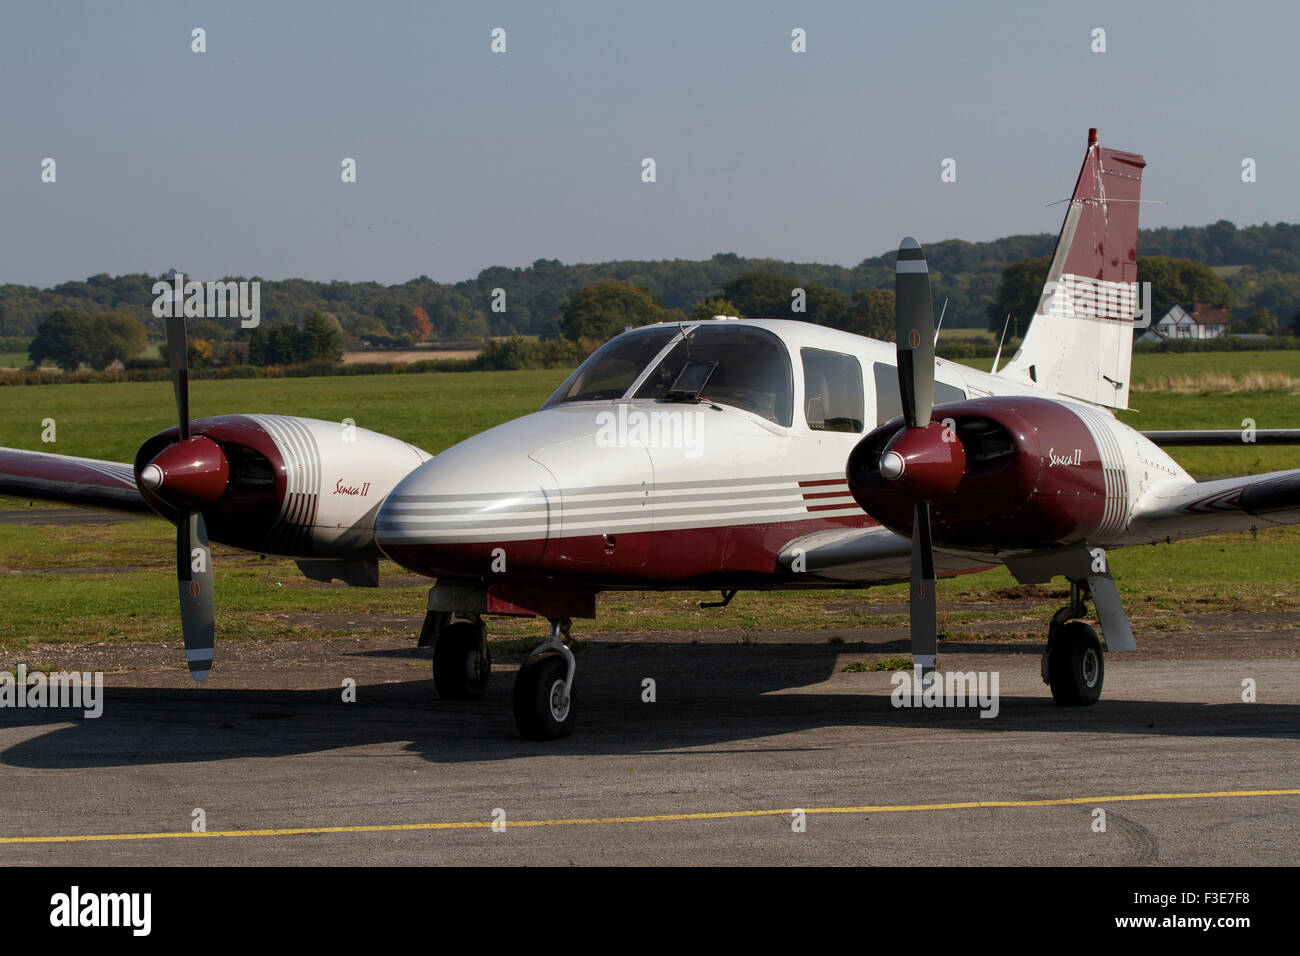 Twin engined aircraft parked at Wolverhampton Airport. UK - Stock Image